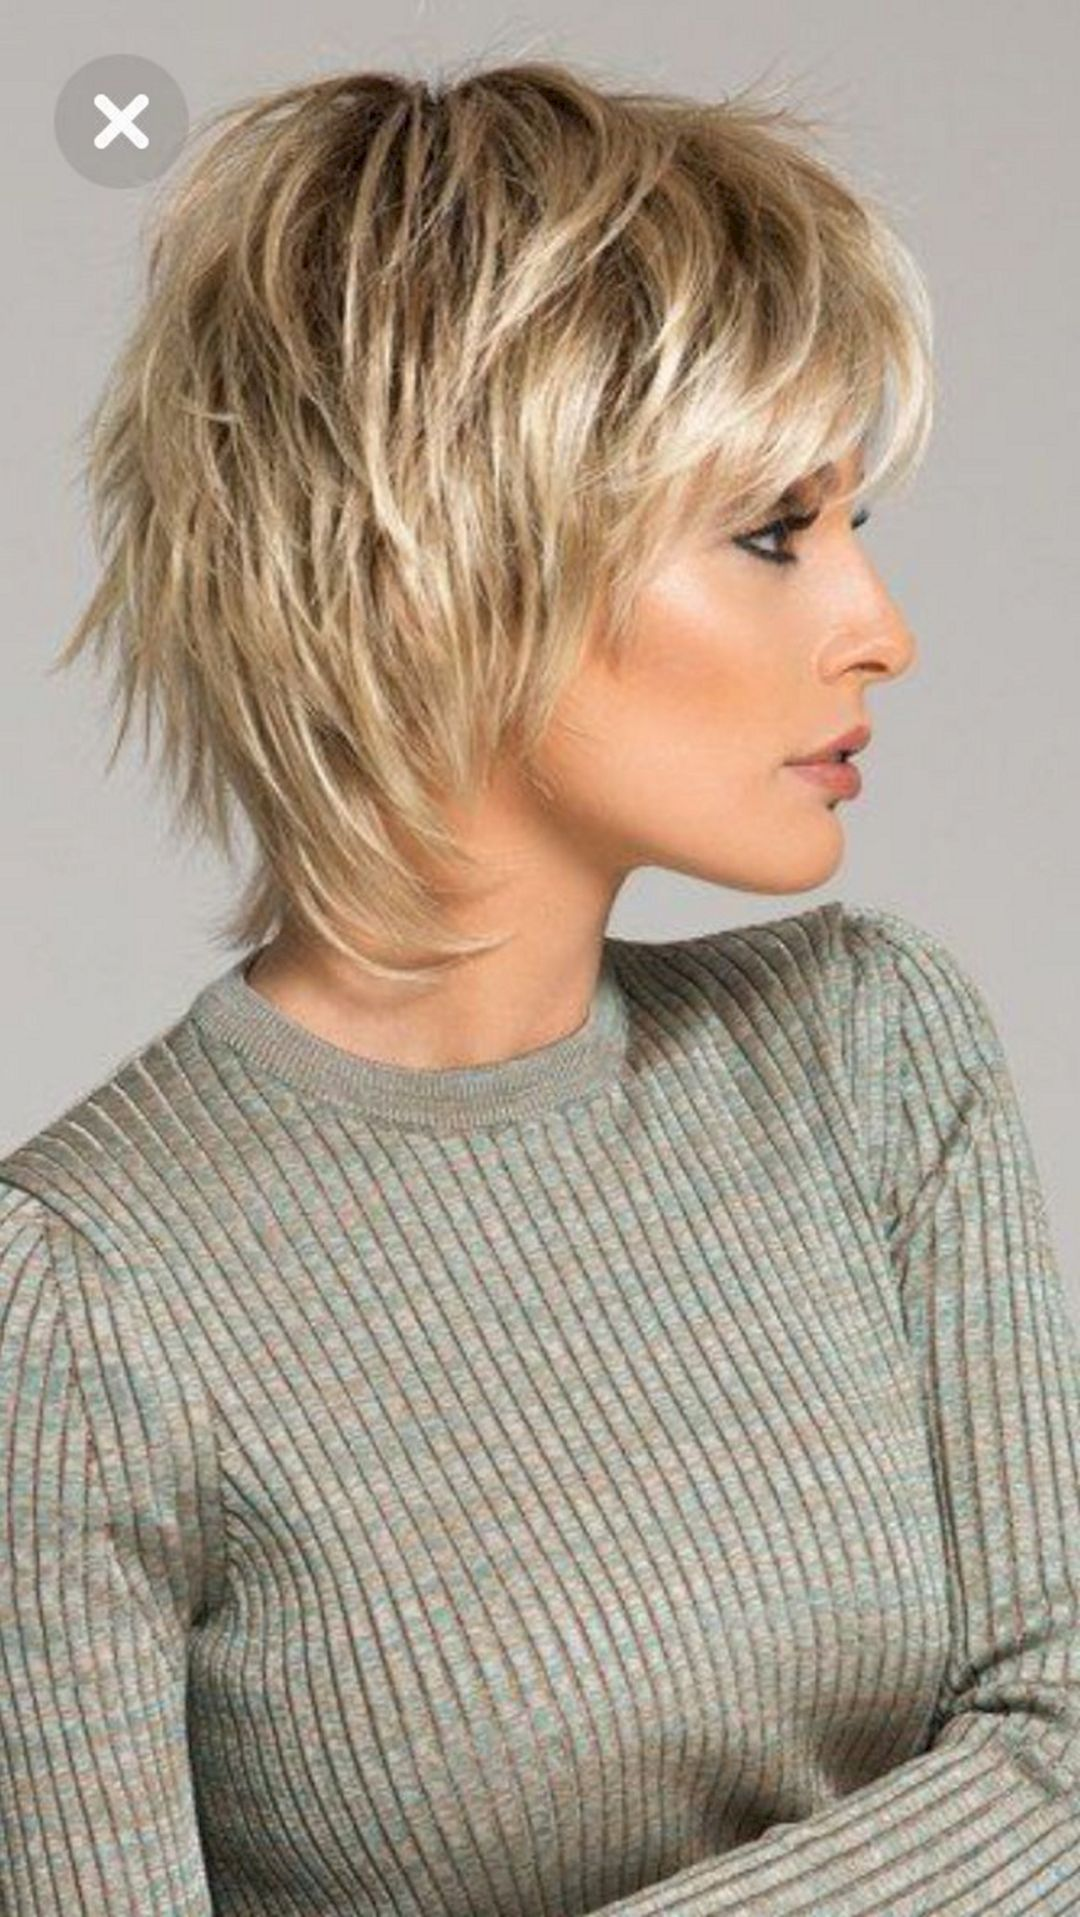 15+ Beautiful Short Layered Ideas For Women Hairstyle Trend 2019 #shortlayeredhairstyles